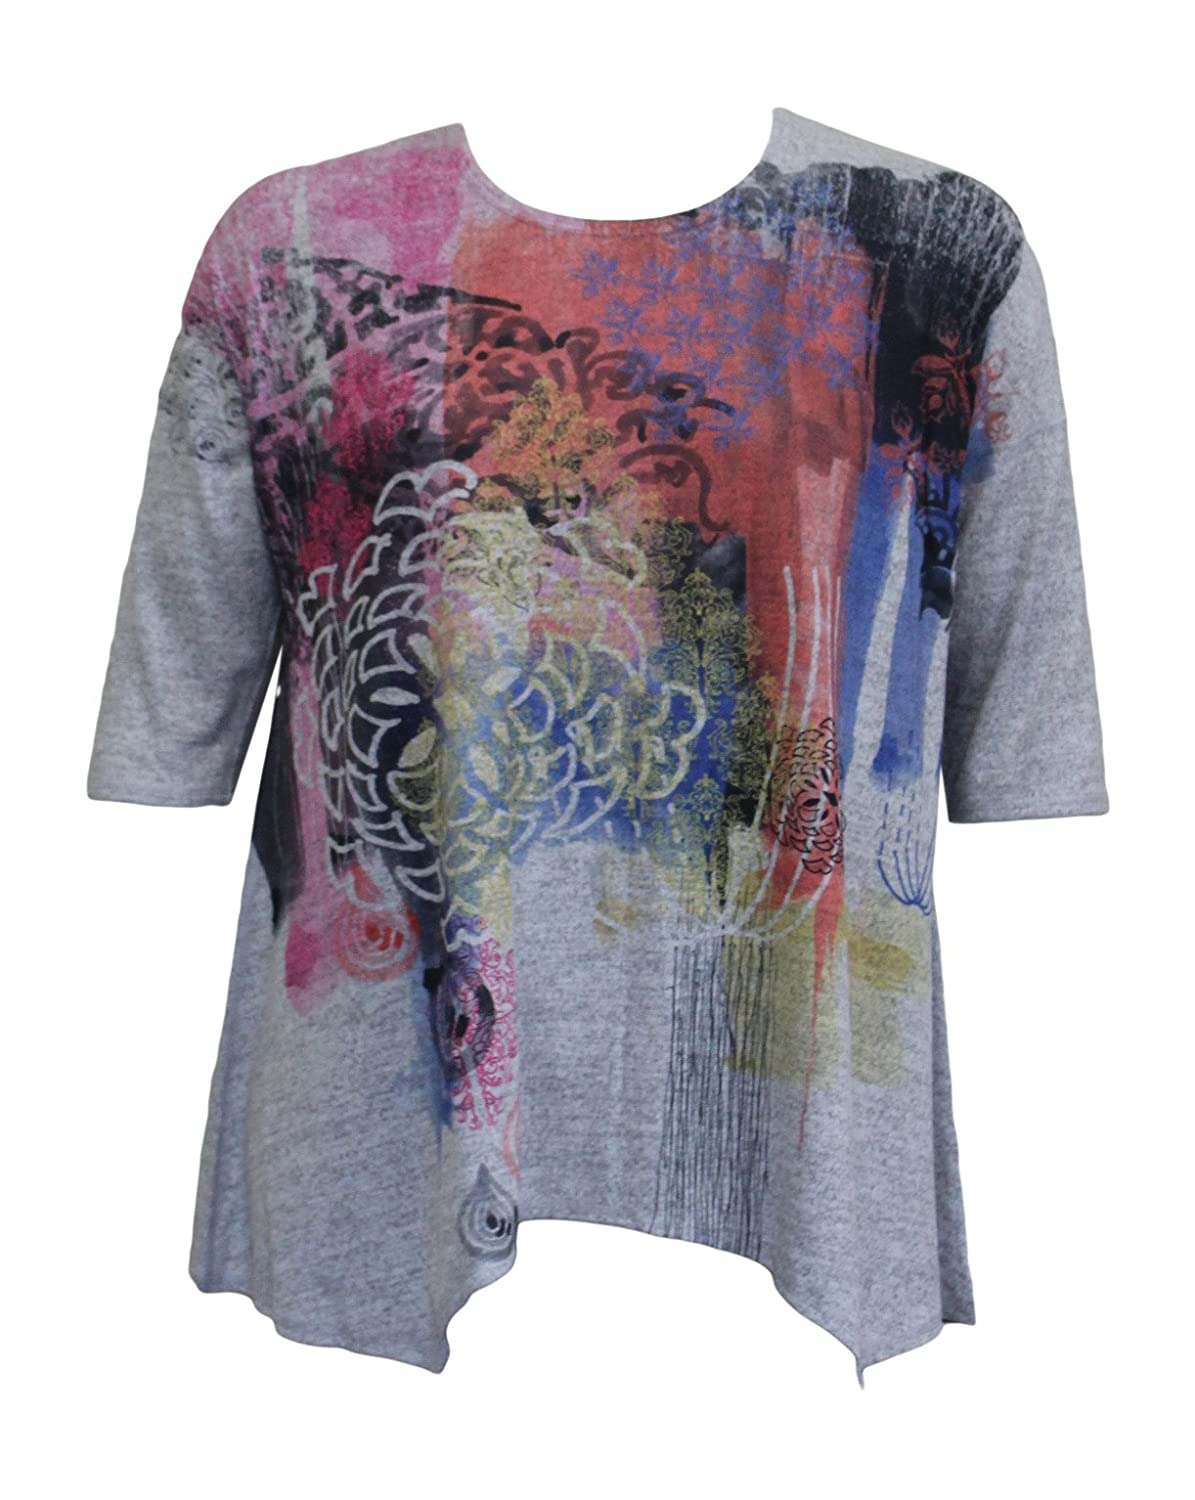 Et'Lois Women's Abstract Floral Swing Tunic Top